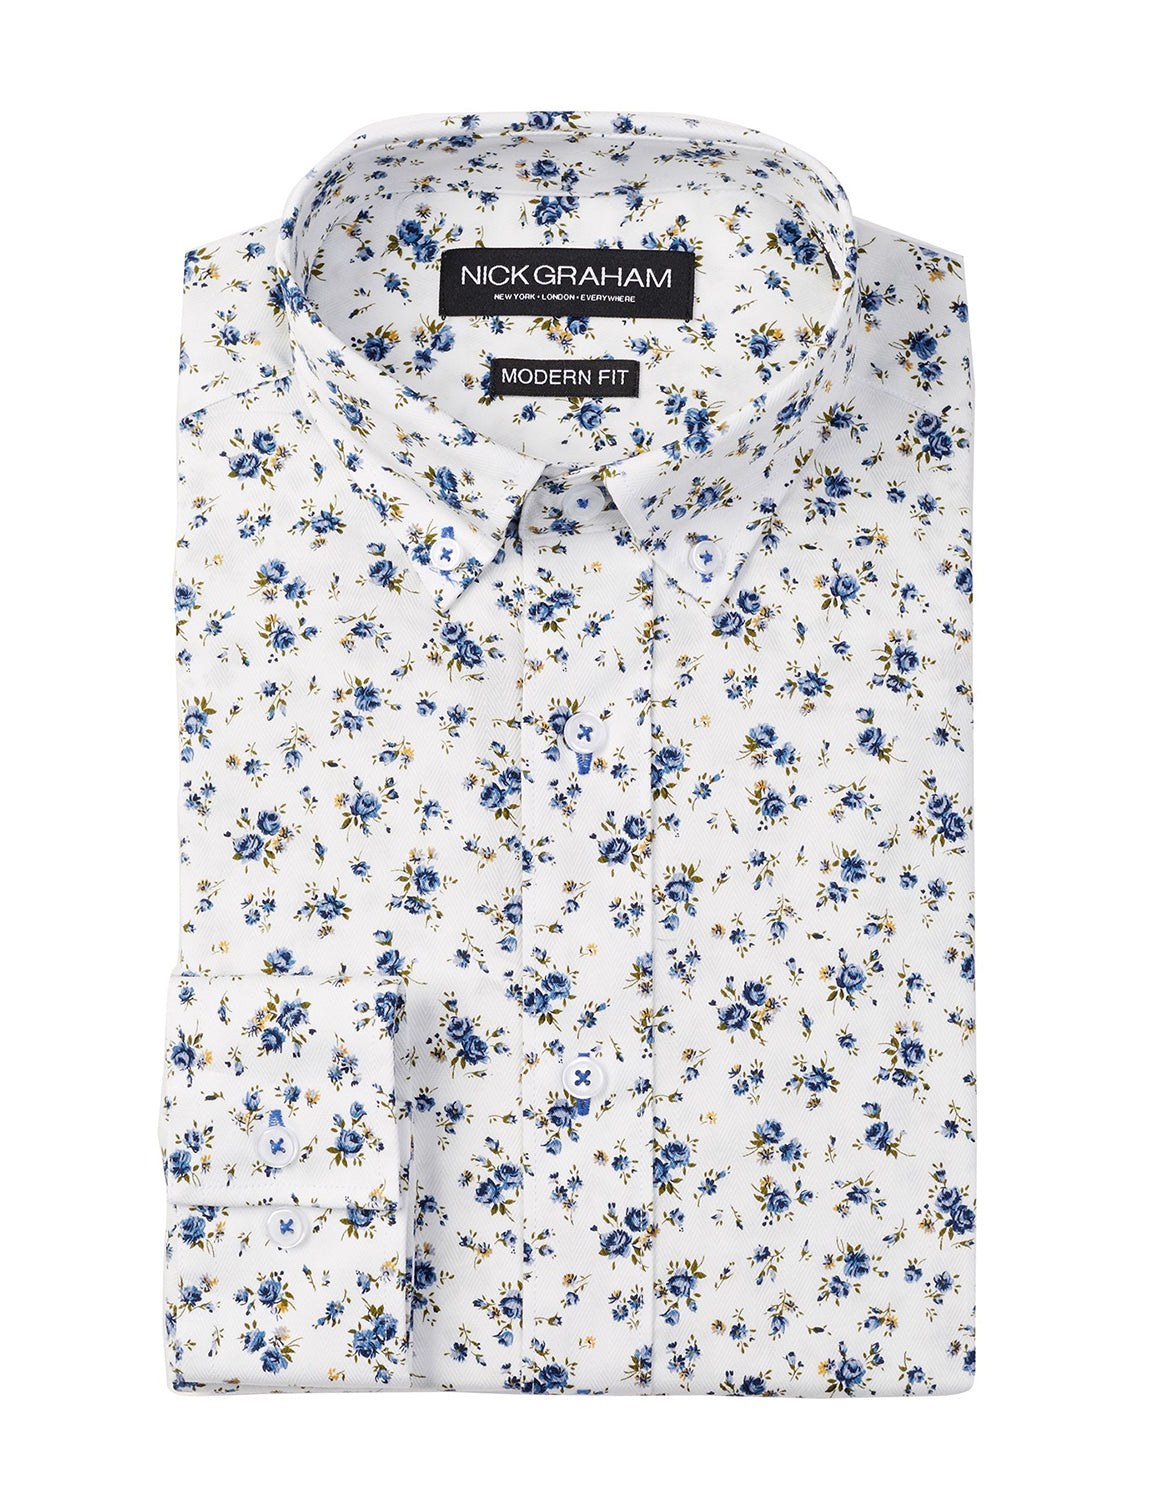 Blue Floral Modern Fit Long Sleeve Dress Shirt